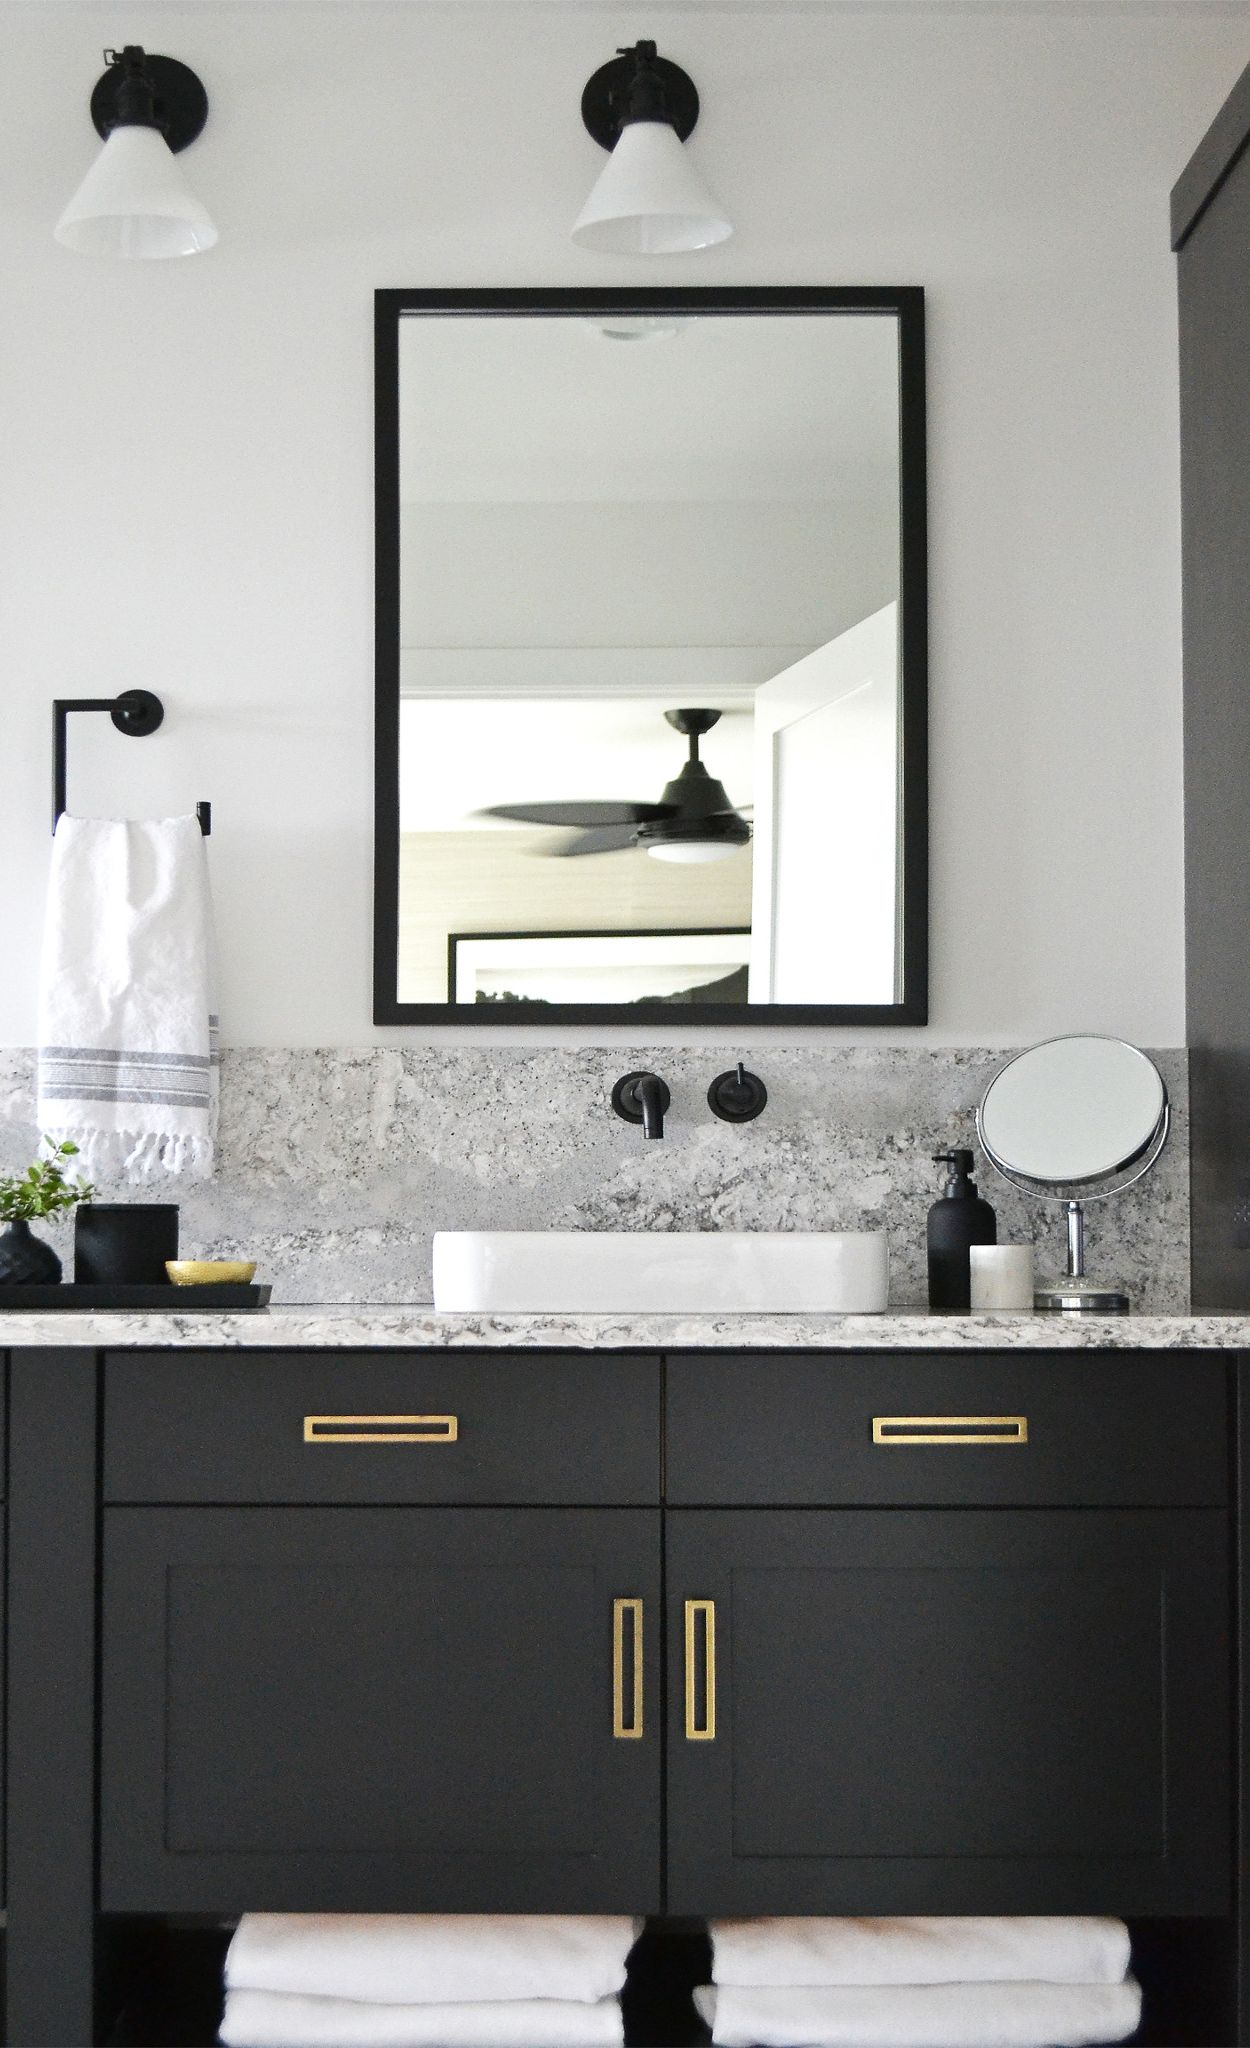 Cambria Summerhill  adds a pop of pattern to this matte black bathroom.